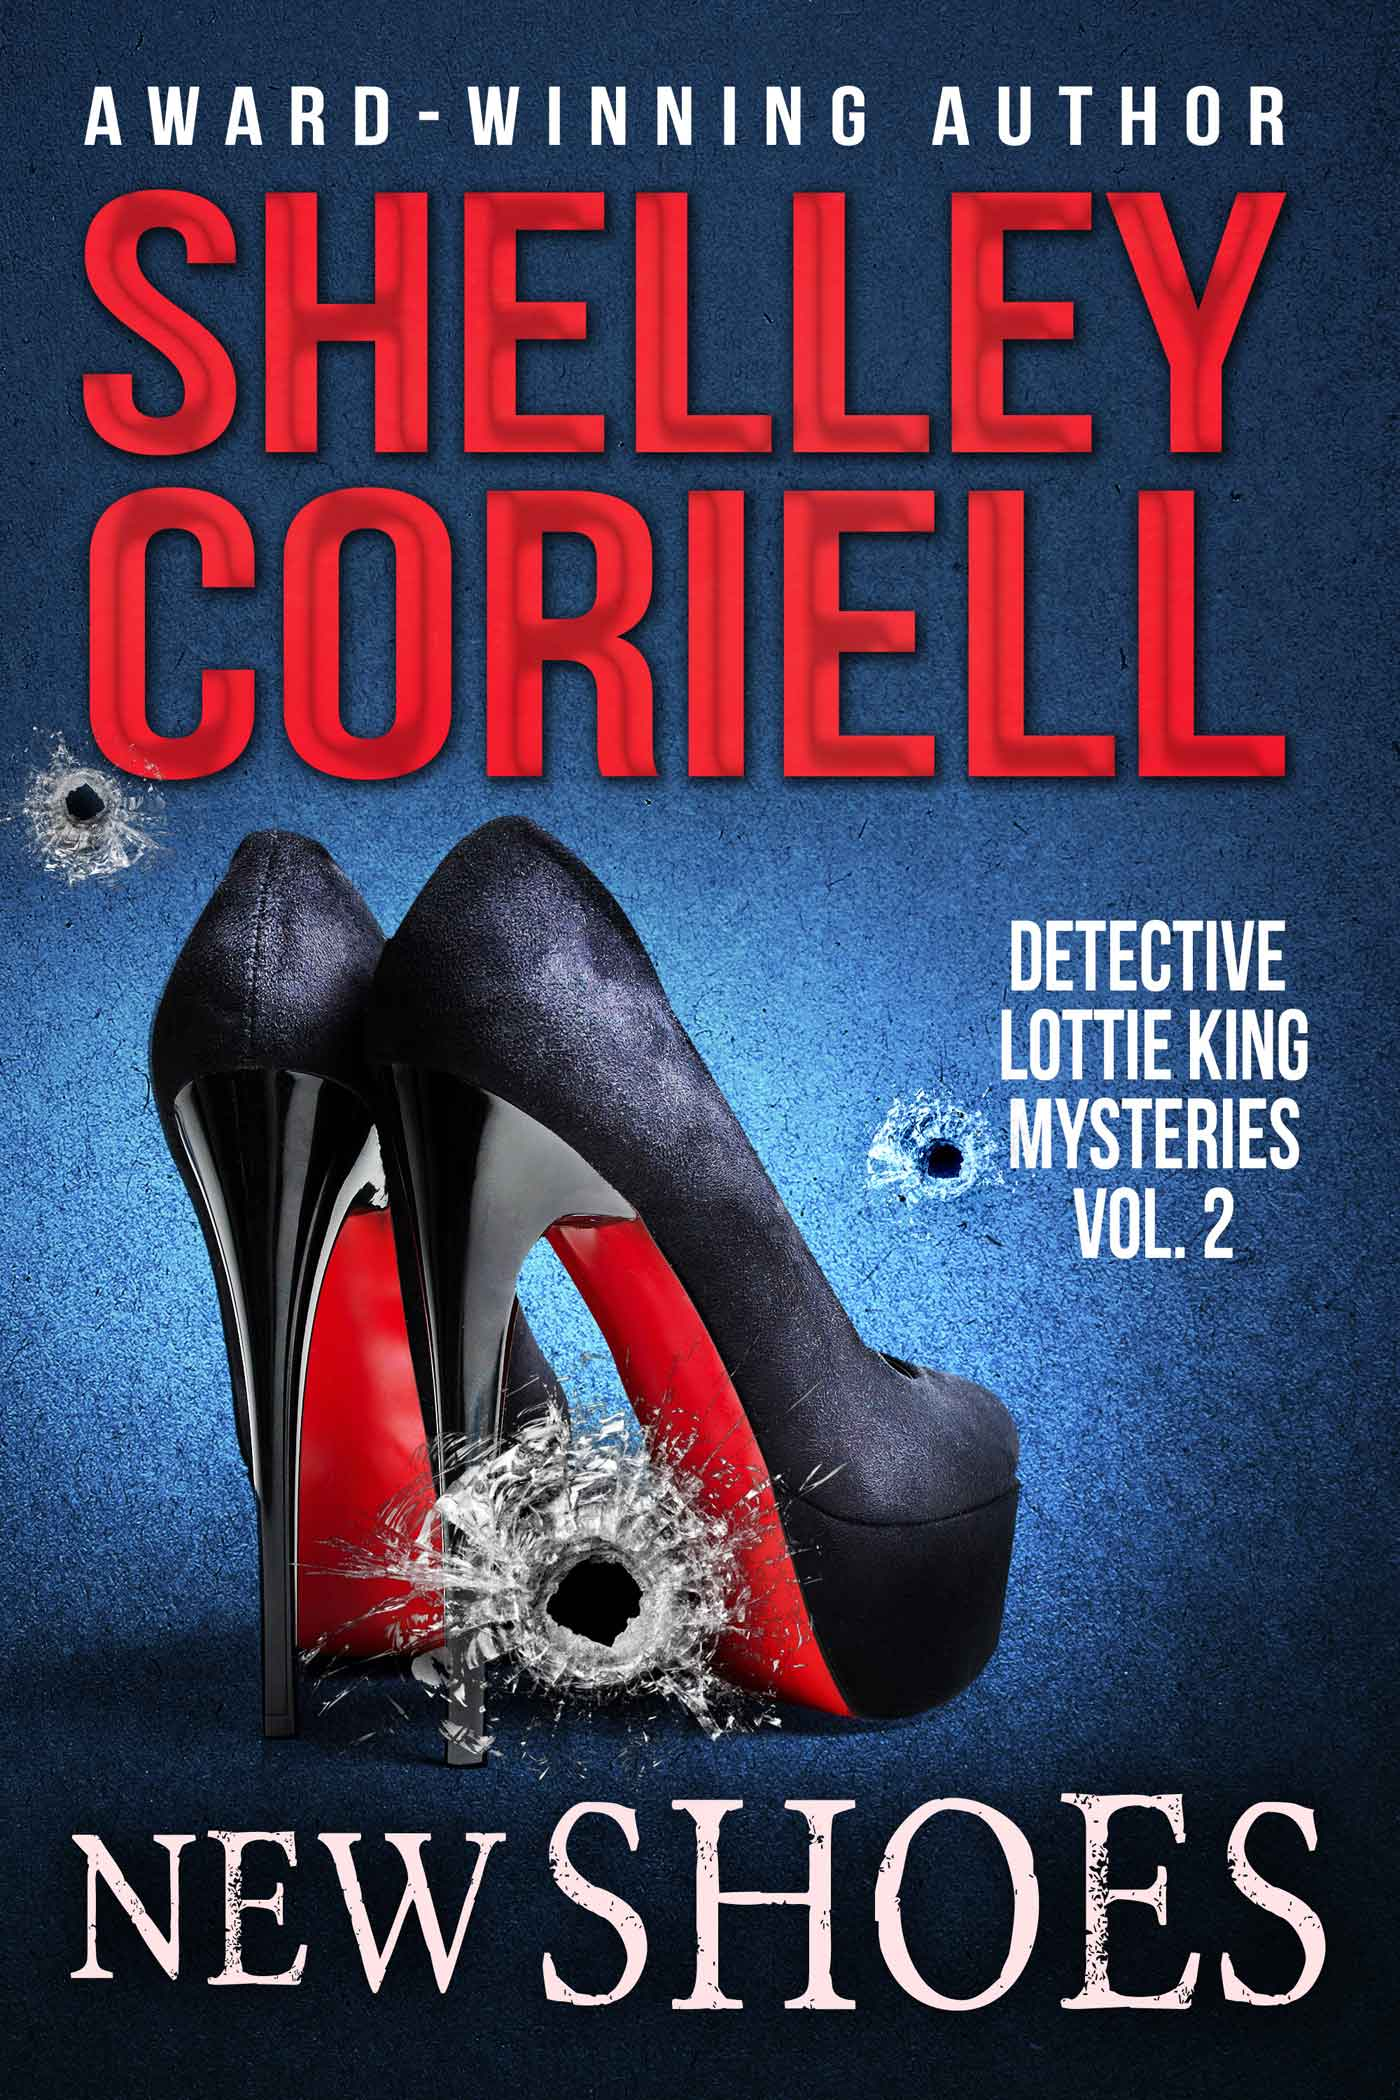 New Shoes (Detective Lottie King Mysteries, Vol. 2) a mystery anthology by Shelley Coriell, published by Winter Pear Press